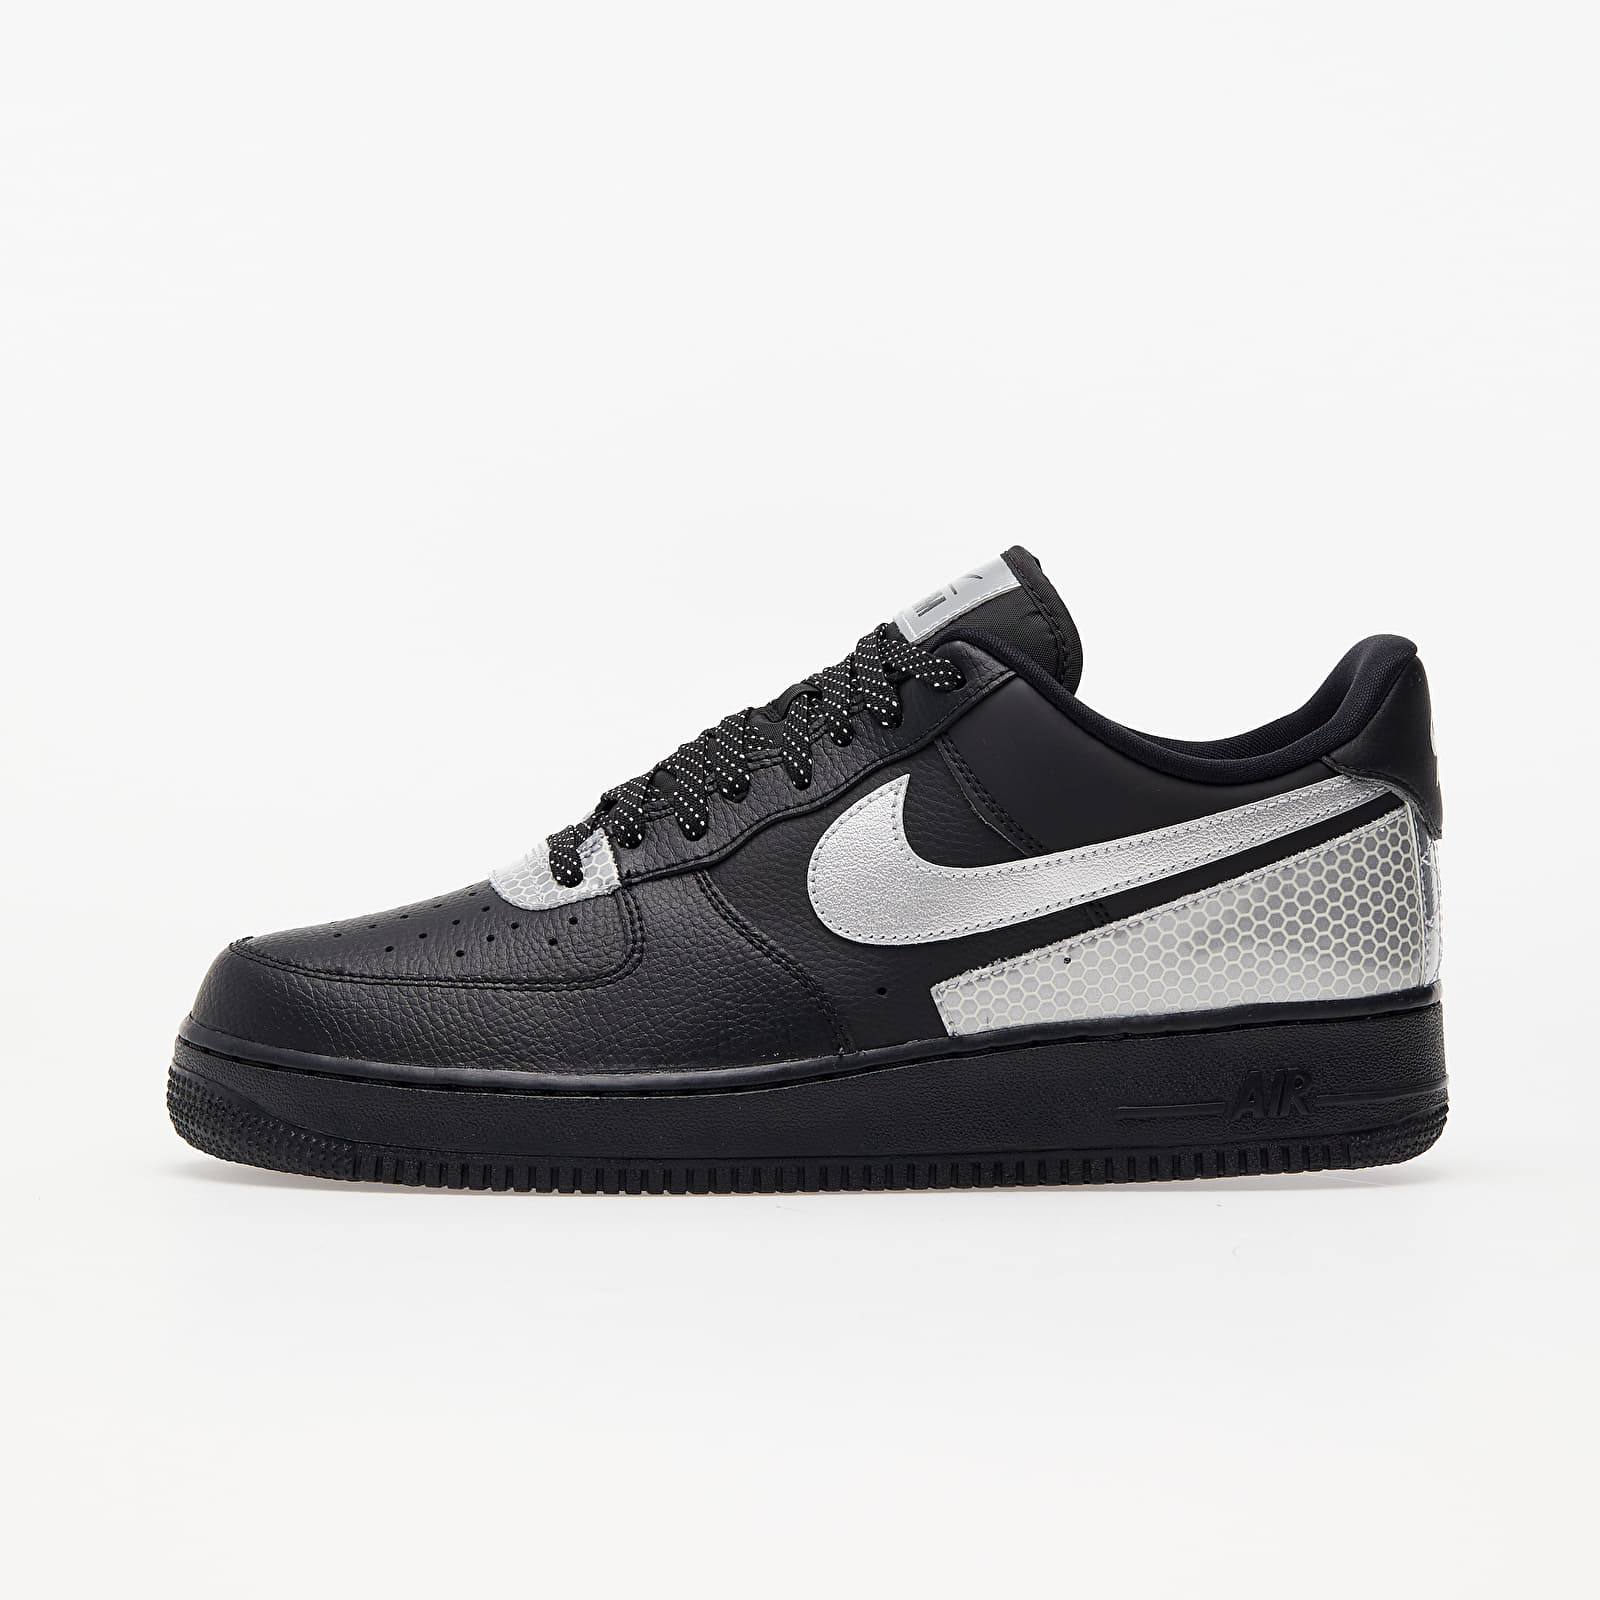 Muške tenisice Nike Air Force 1 '07 LV8 3M Black/ Metallic Silver-Black